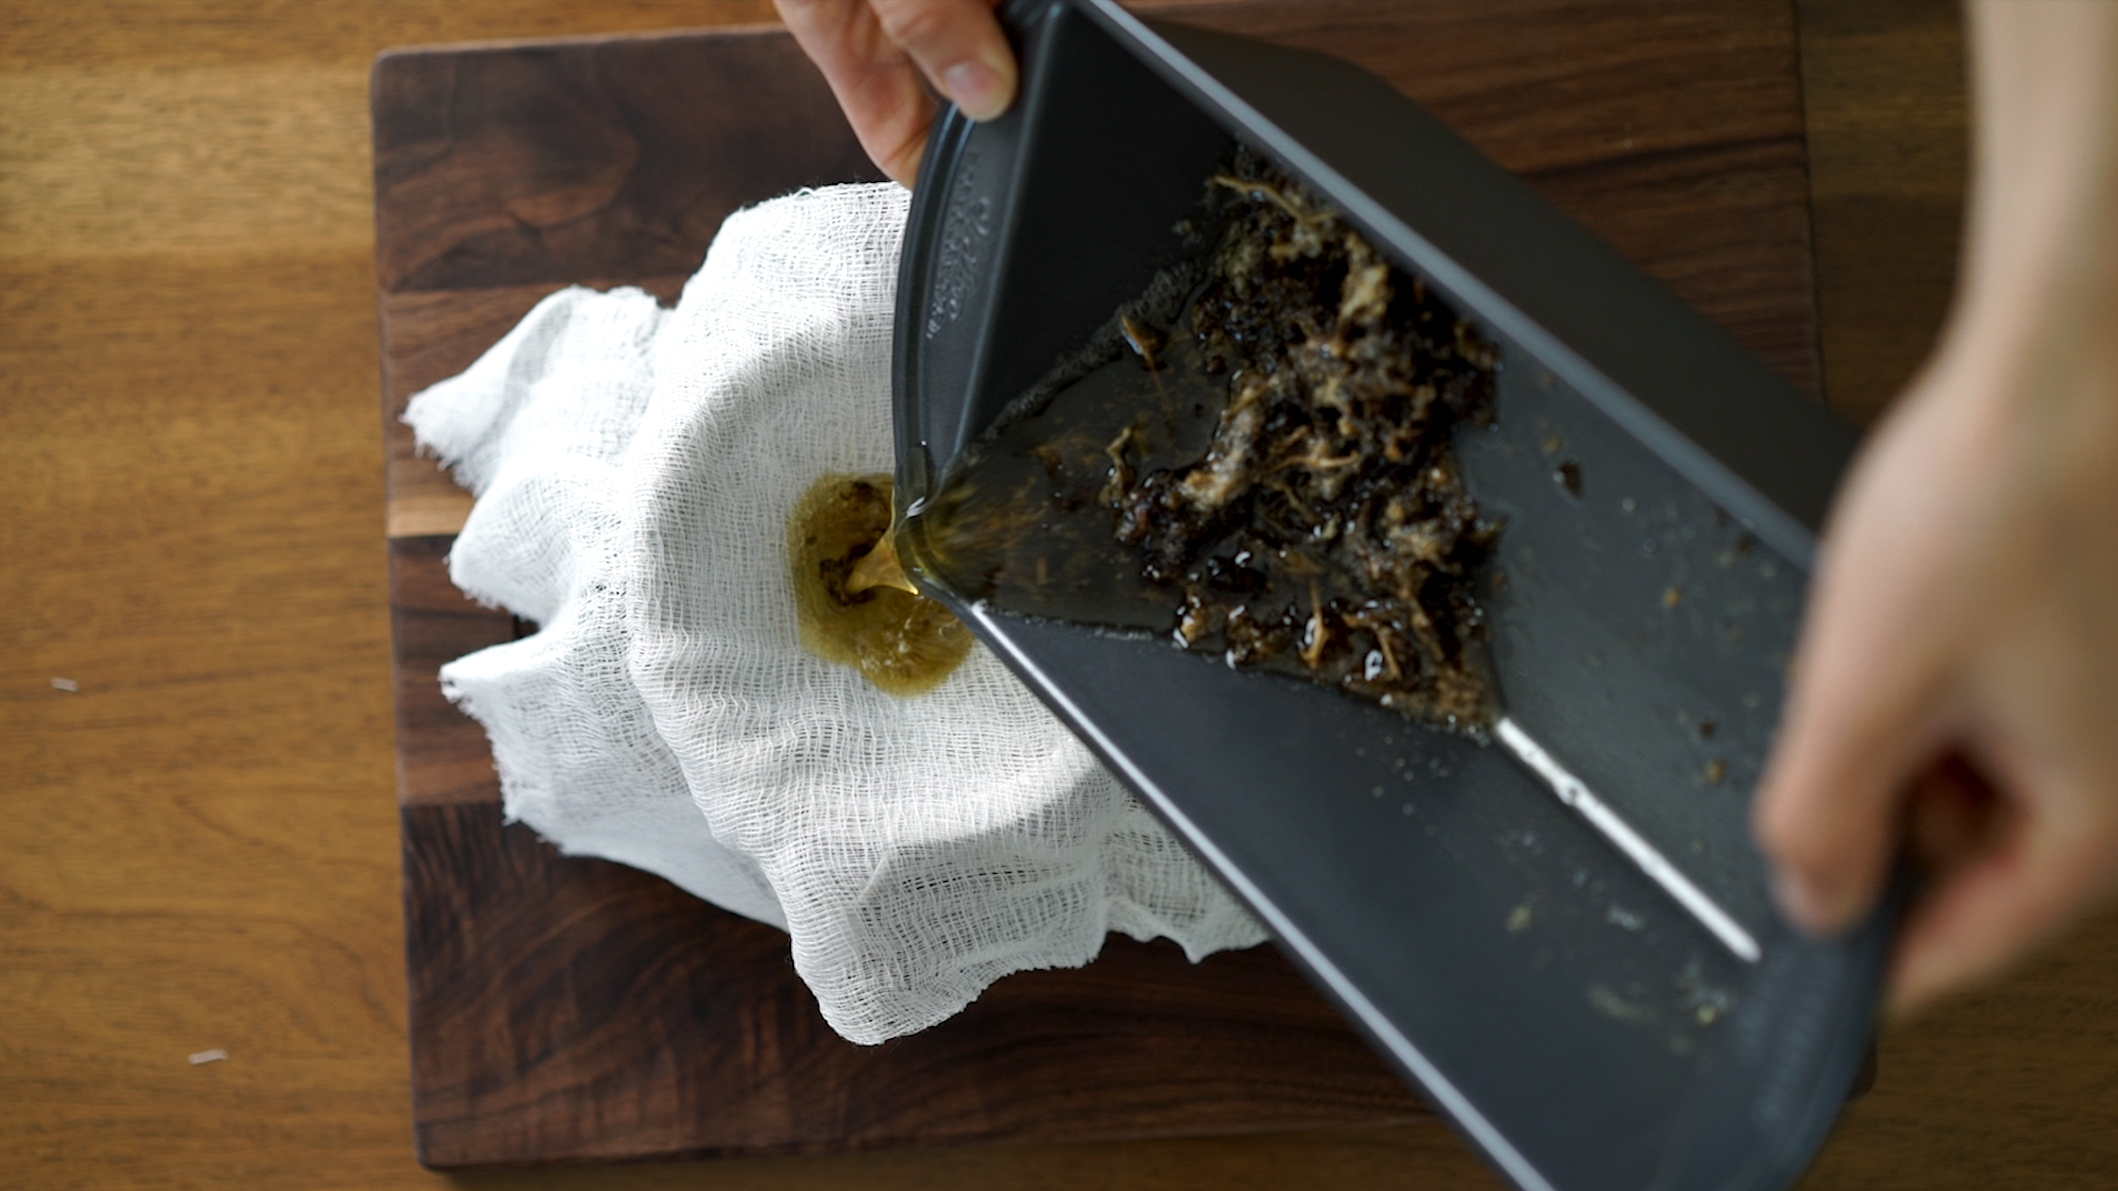 How to Make Cannabis Butter in the Oven